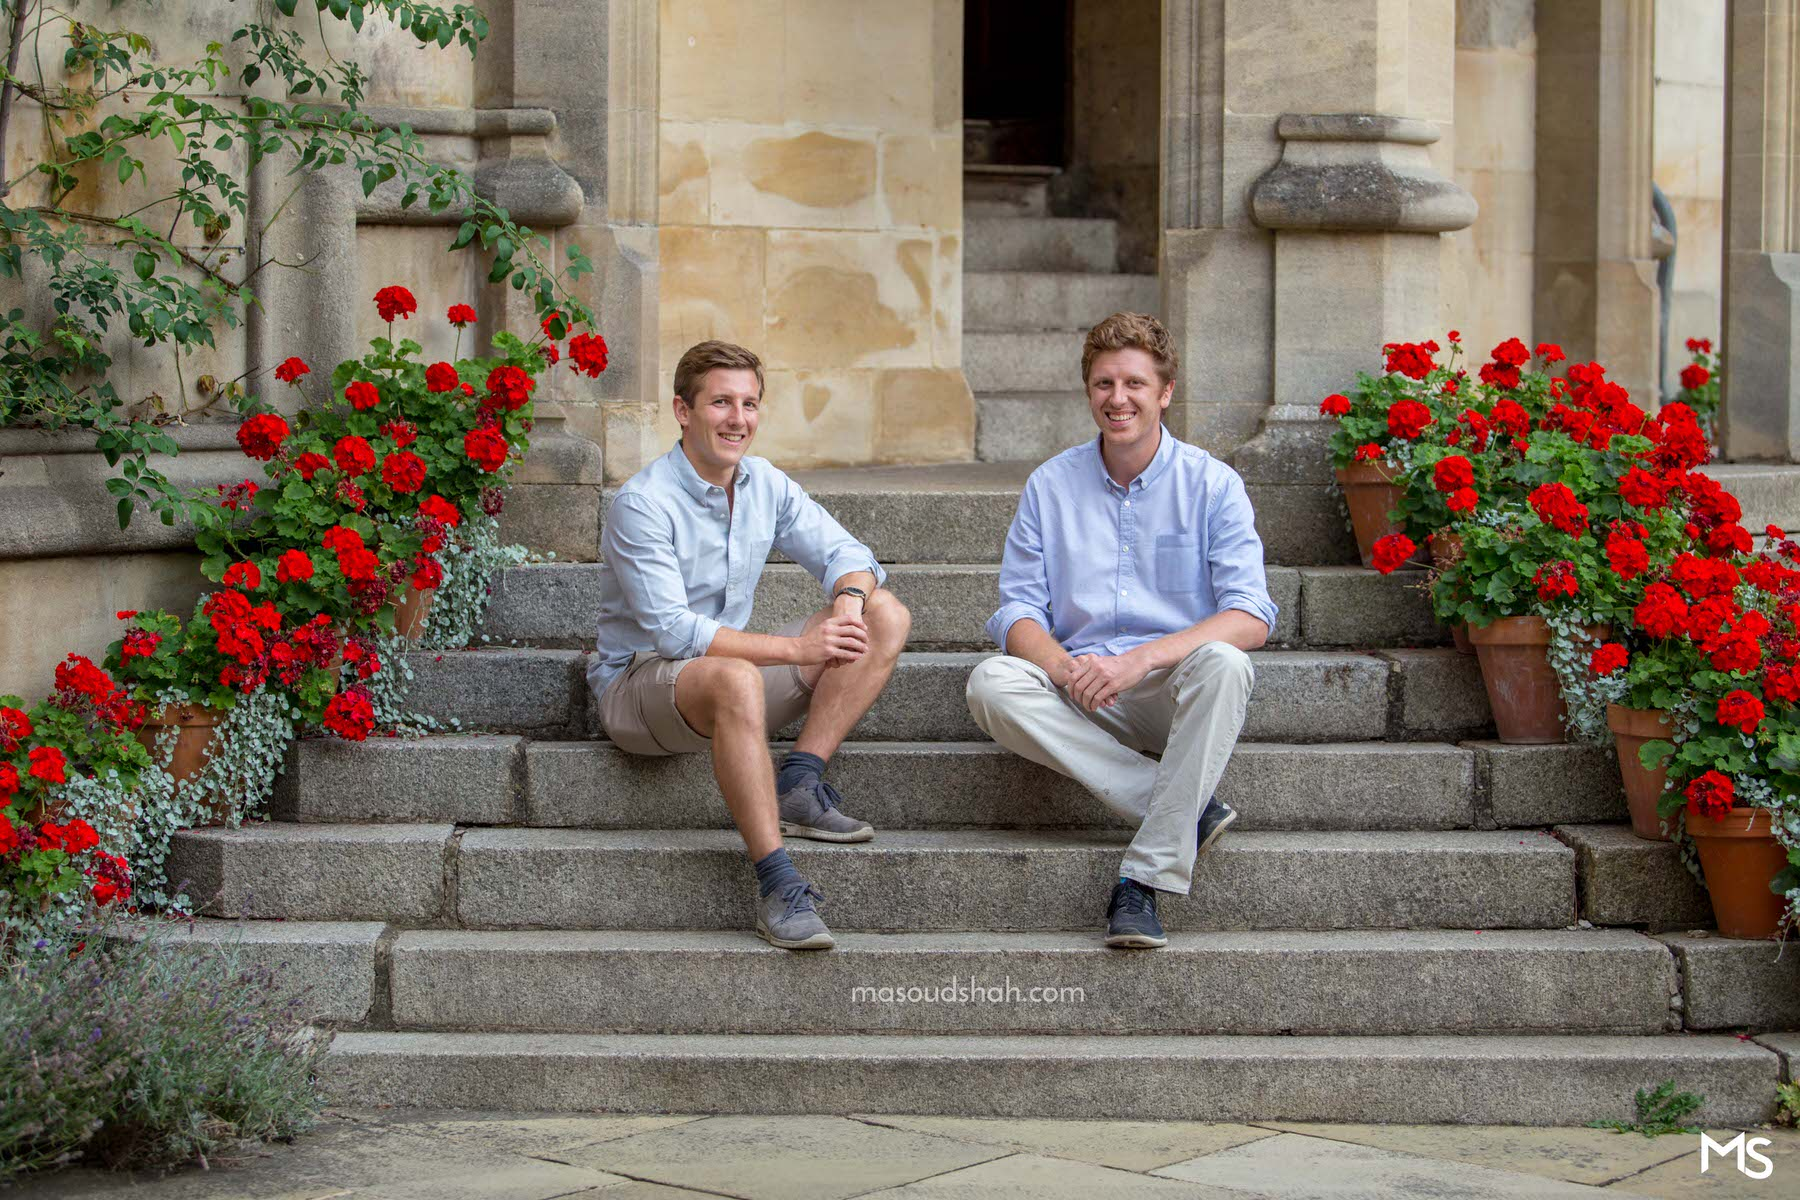 Oxford Summer Courses – Executive Portraits